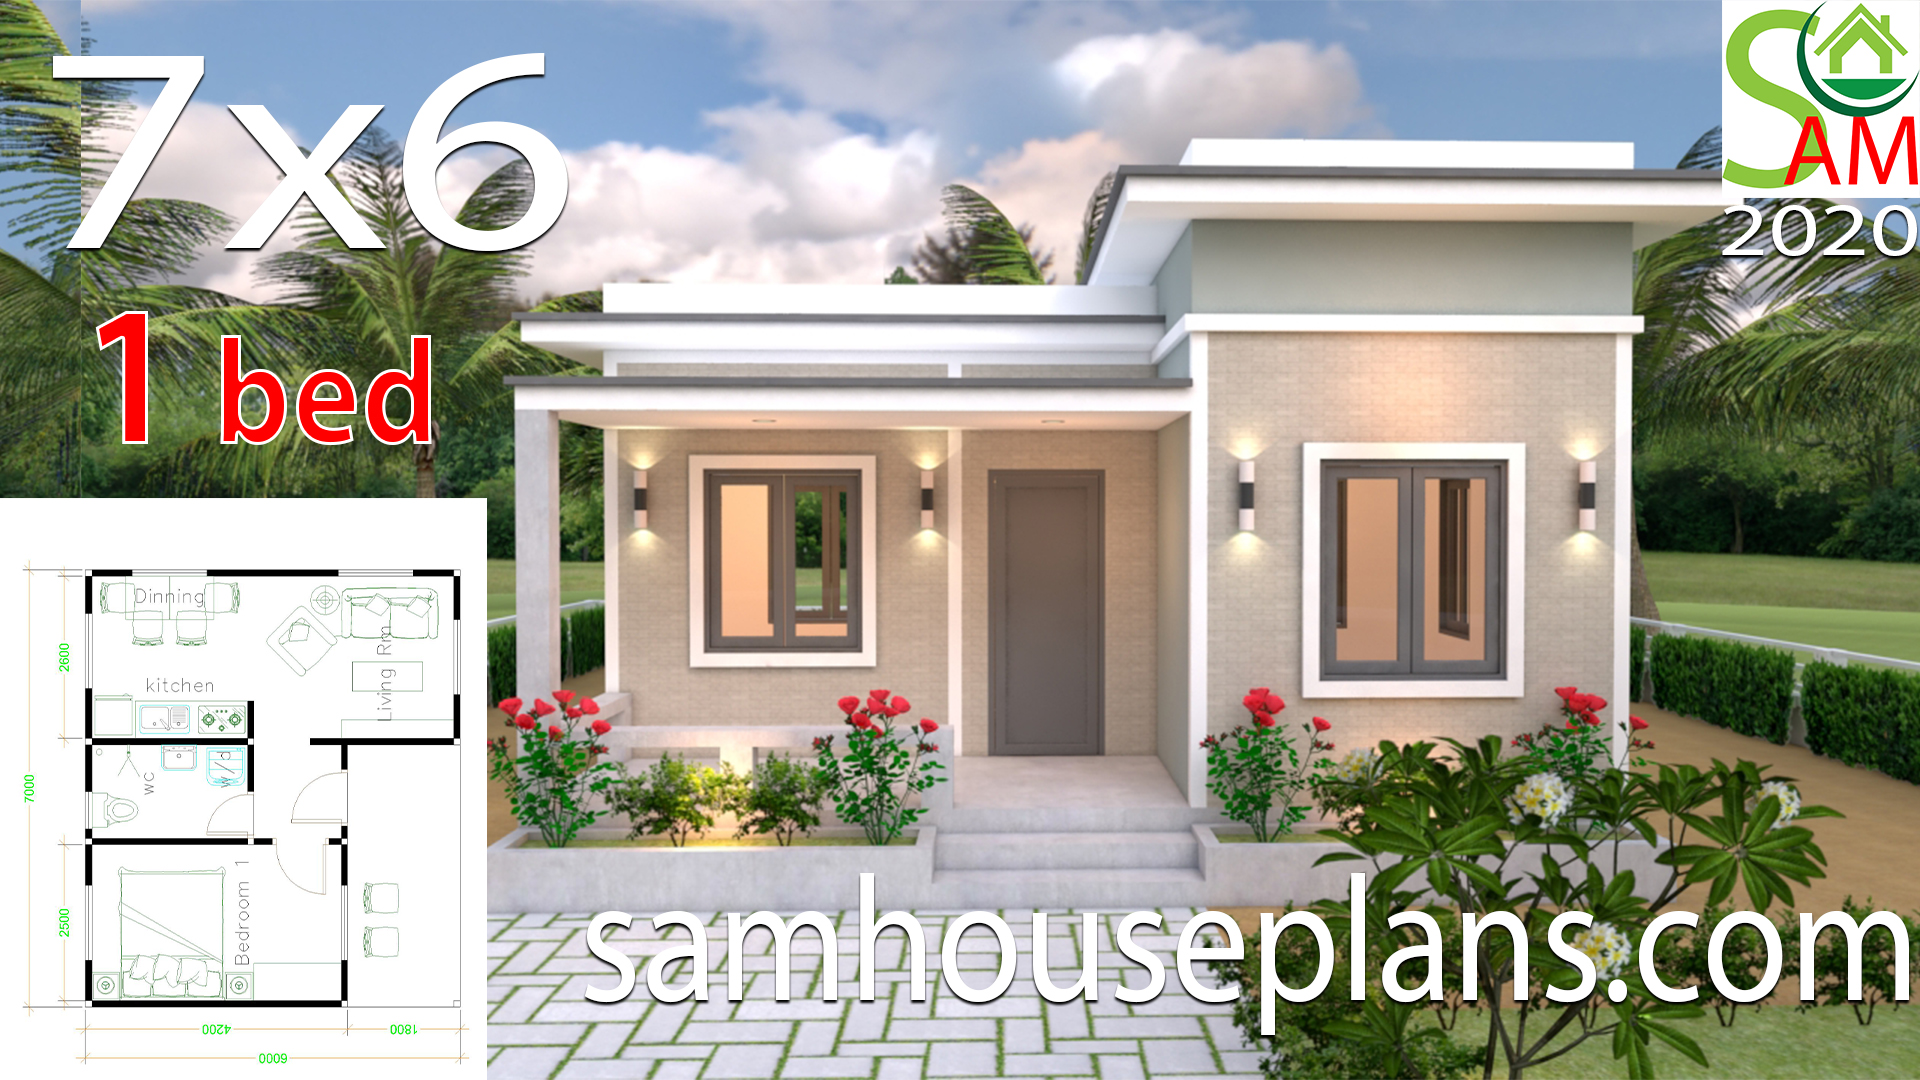 House Plans 7x6 With One Bedroom Flat Roof Samhouseplans